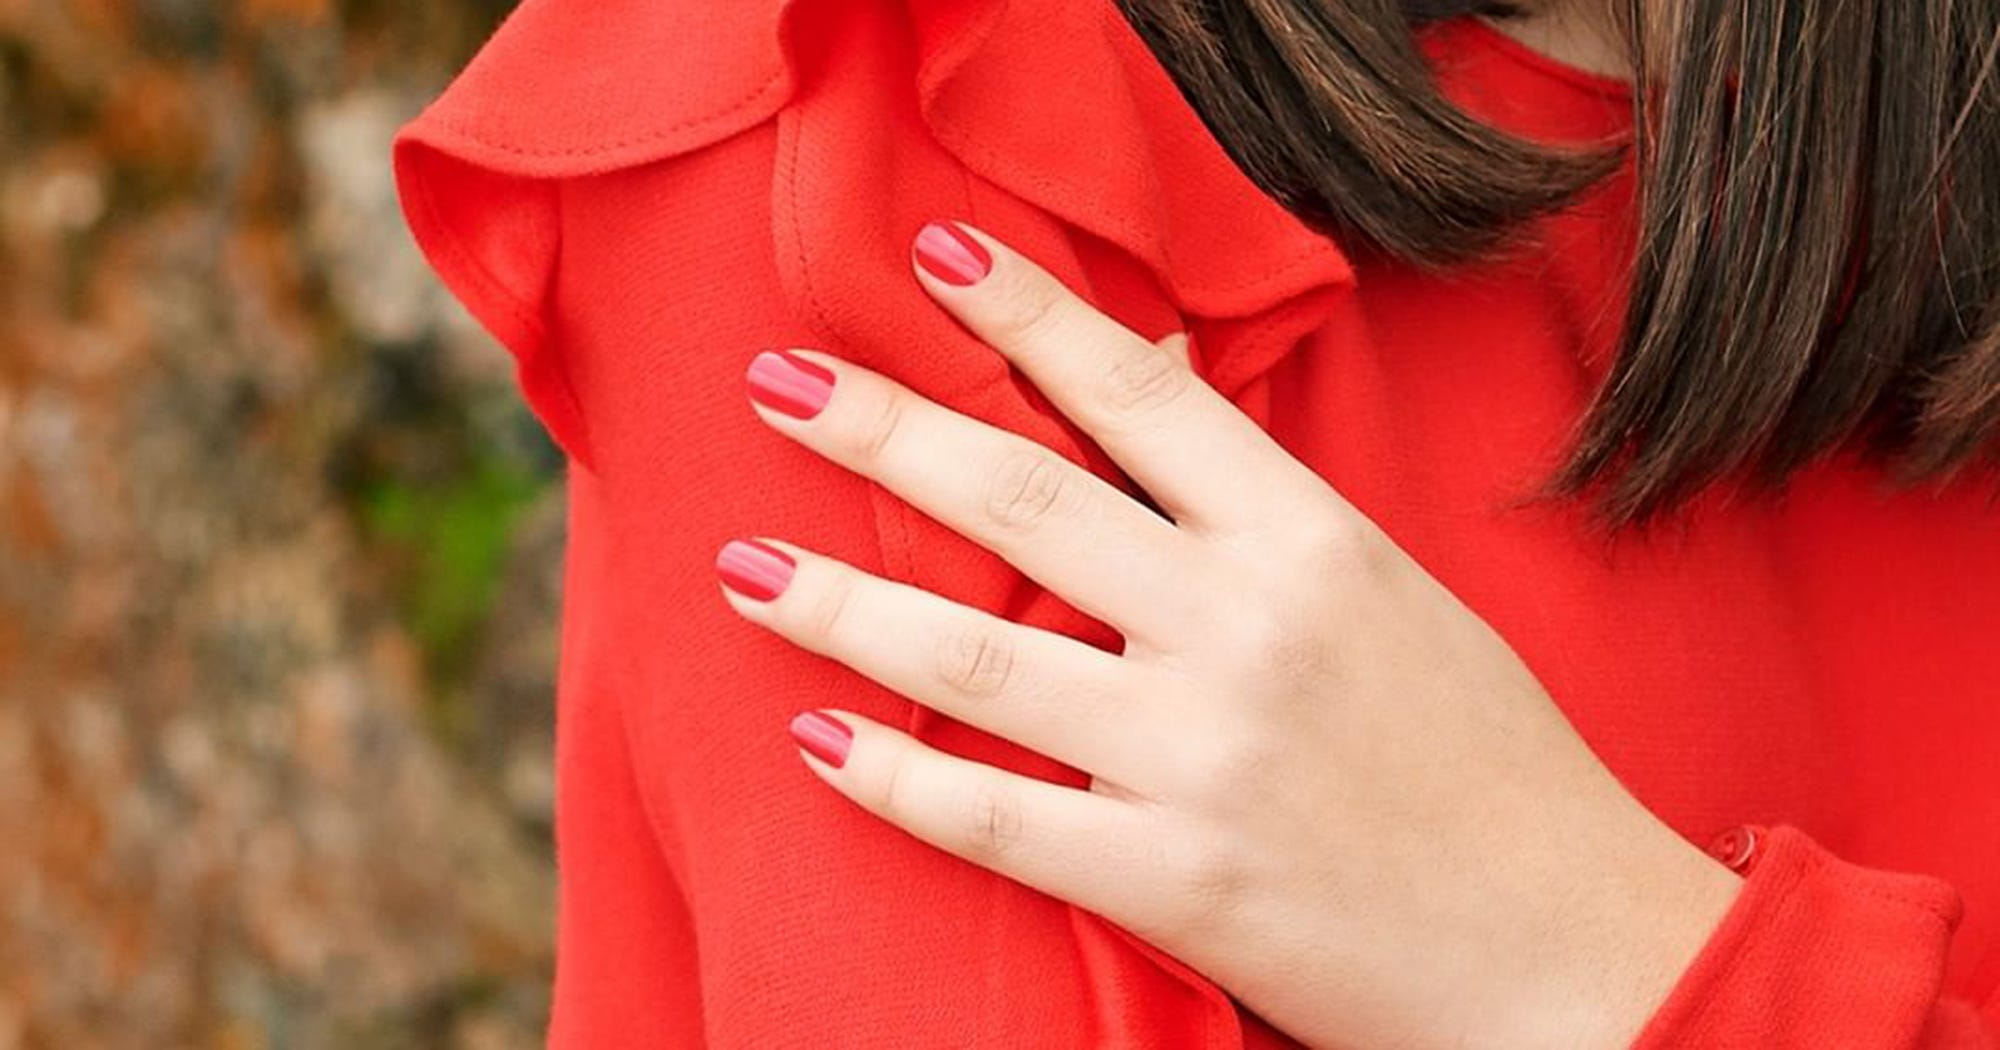 Best OPI Nail Polish Colours That Are All-Time Classics